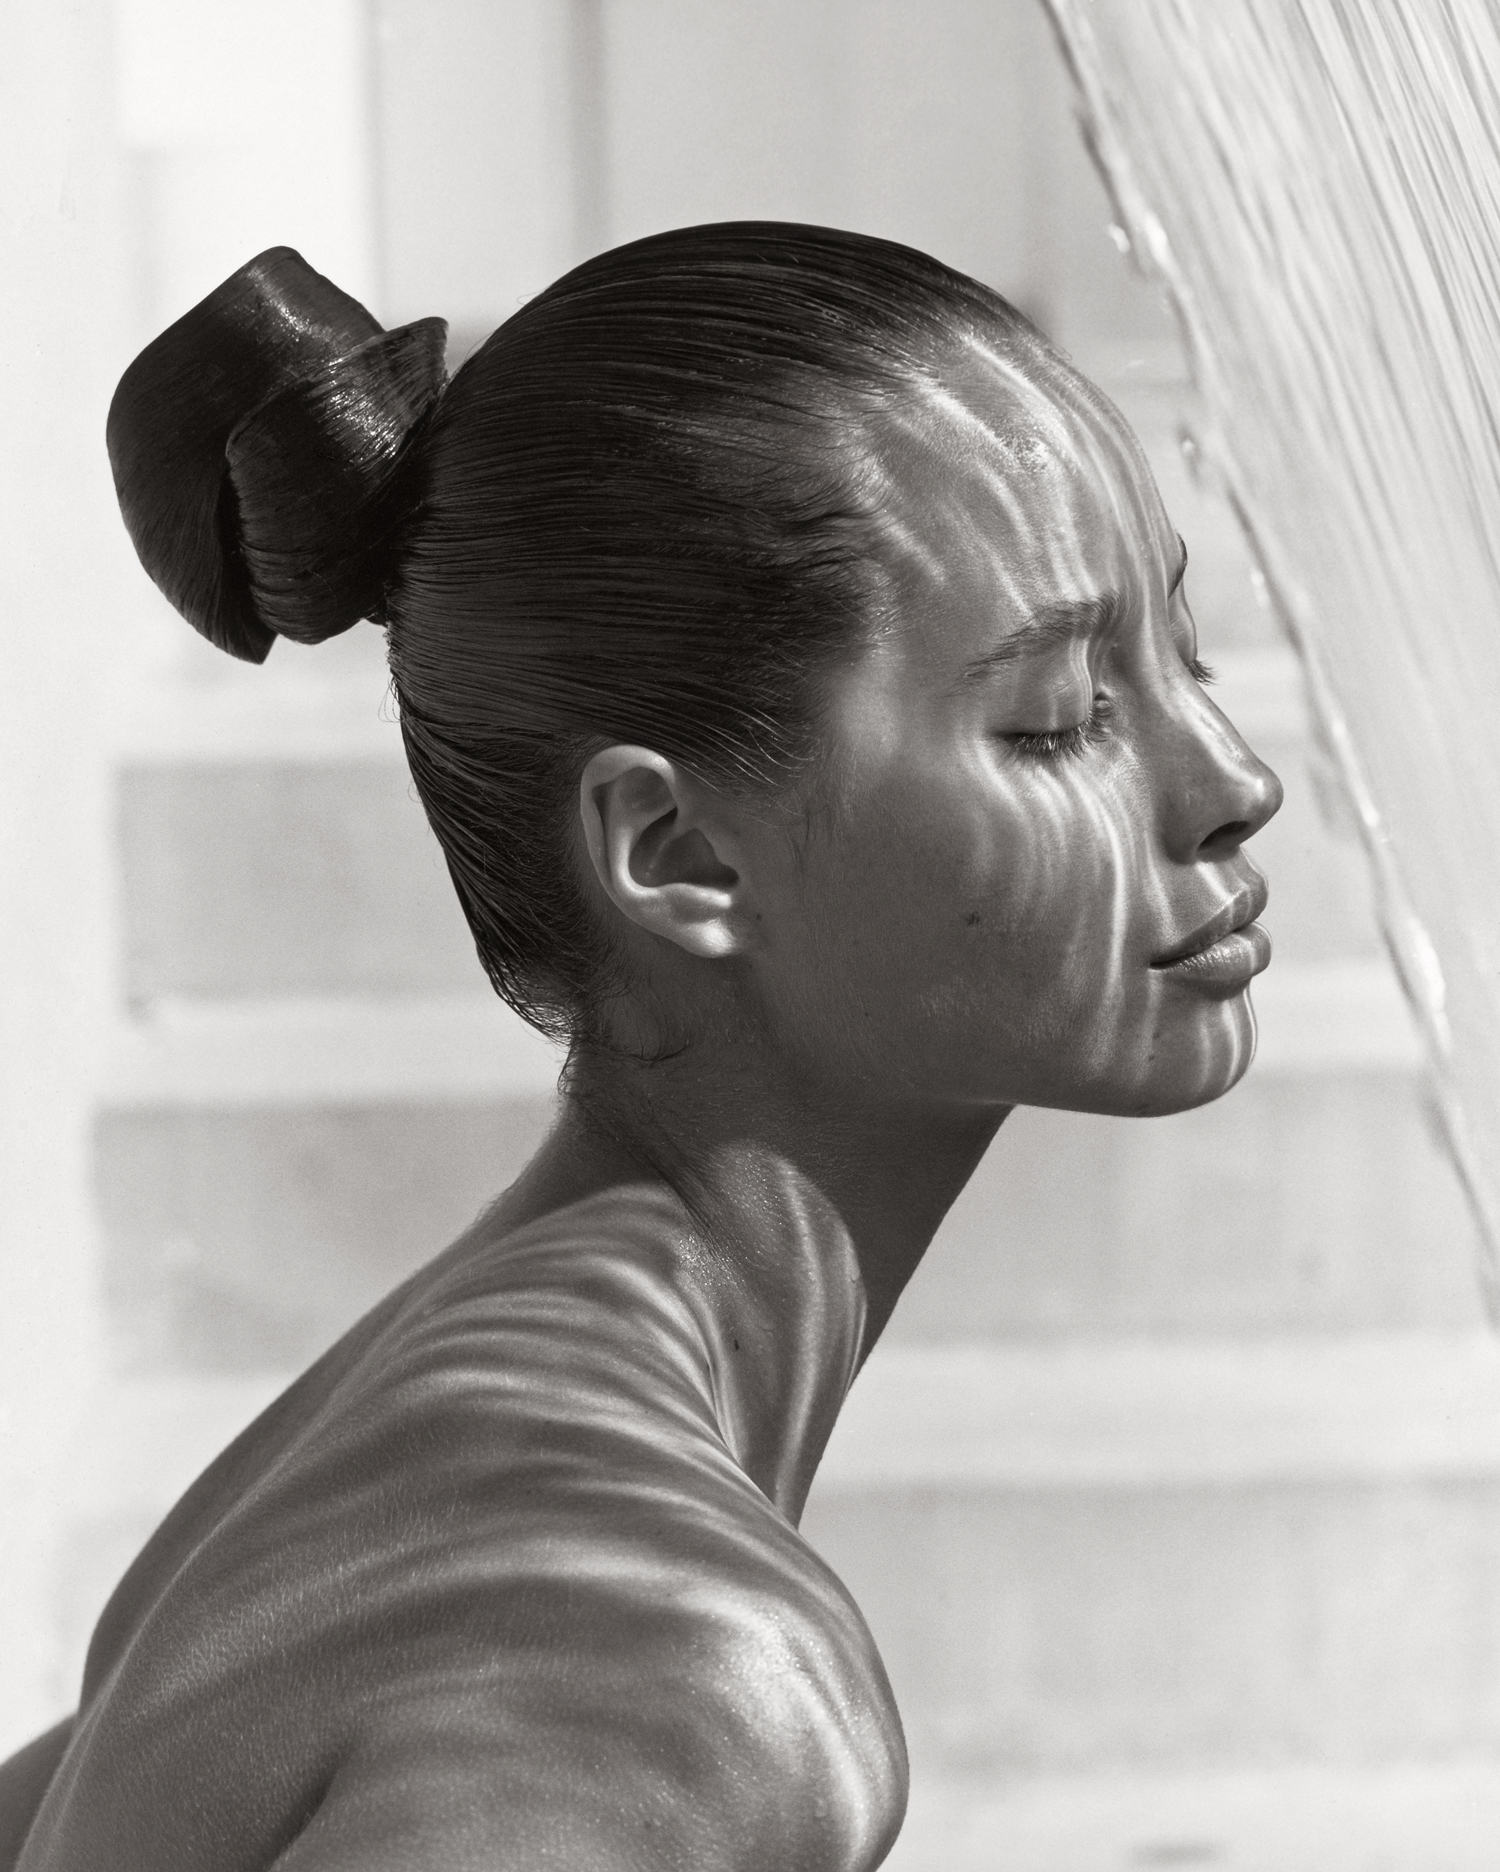 Christy Turlington, Profile, by Herb Ritts